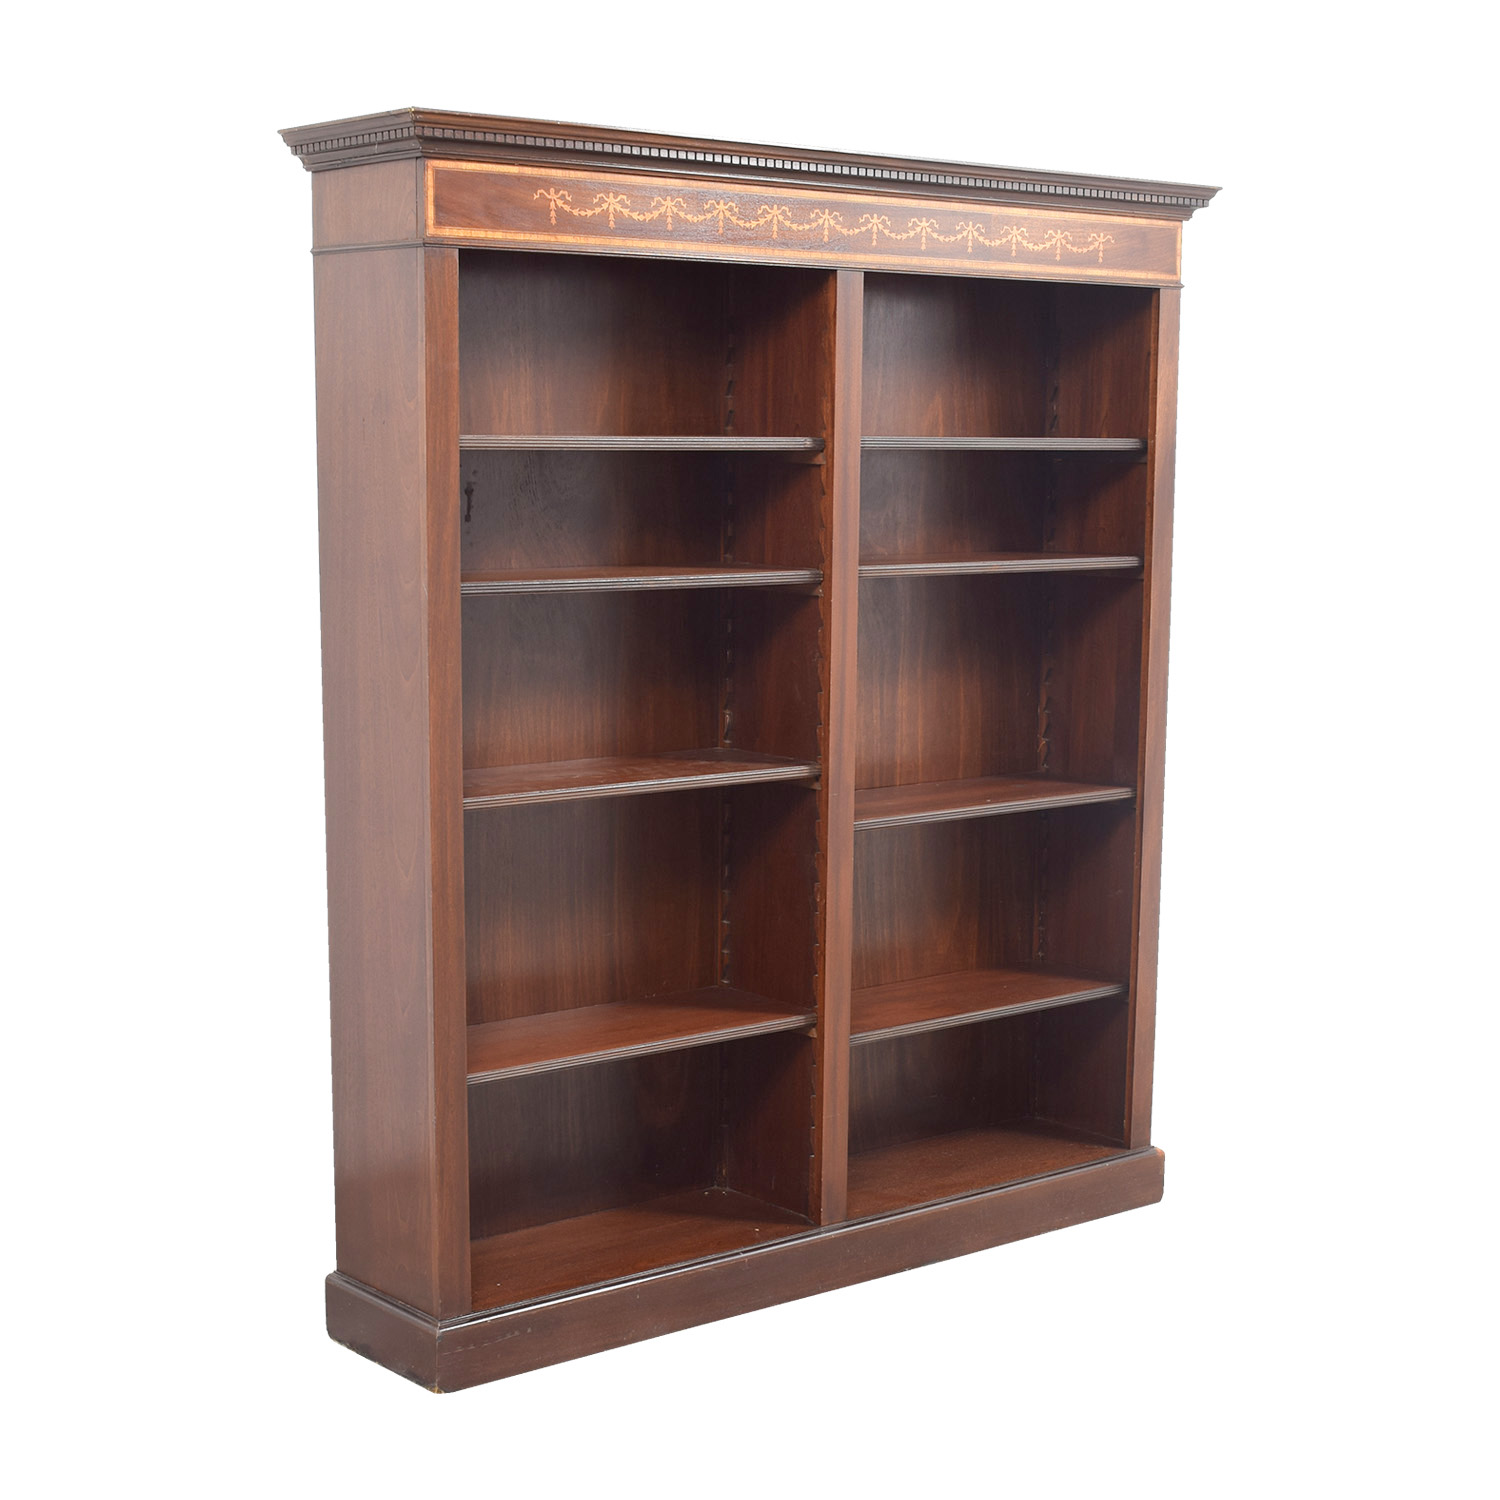 old bookcases for sale bookcases amp shelving used bookcases amp shelving for 3618